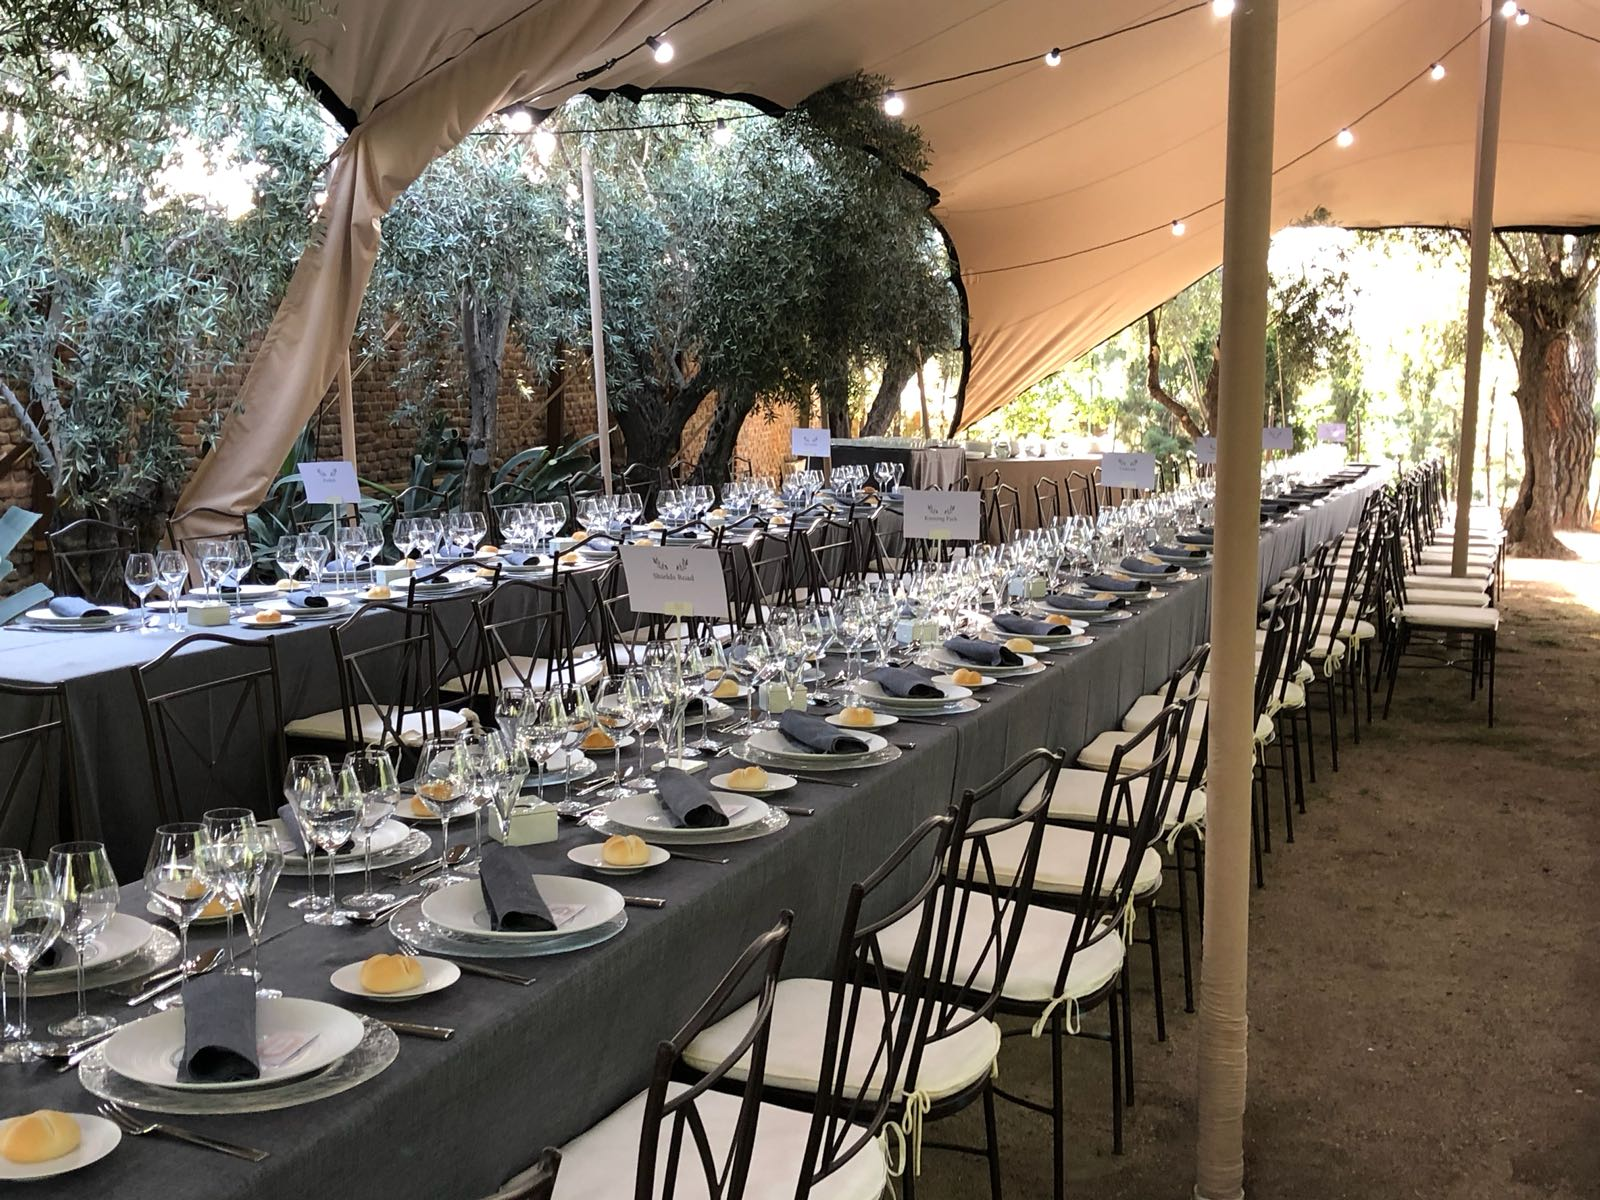 Carpas para eventos - Safara Carpas